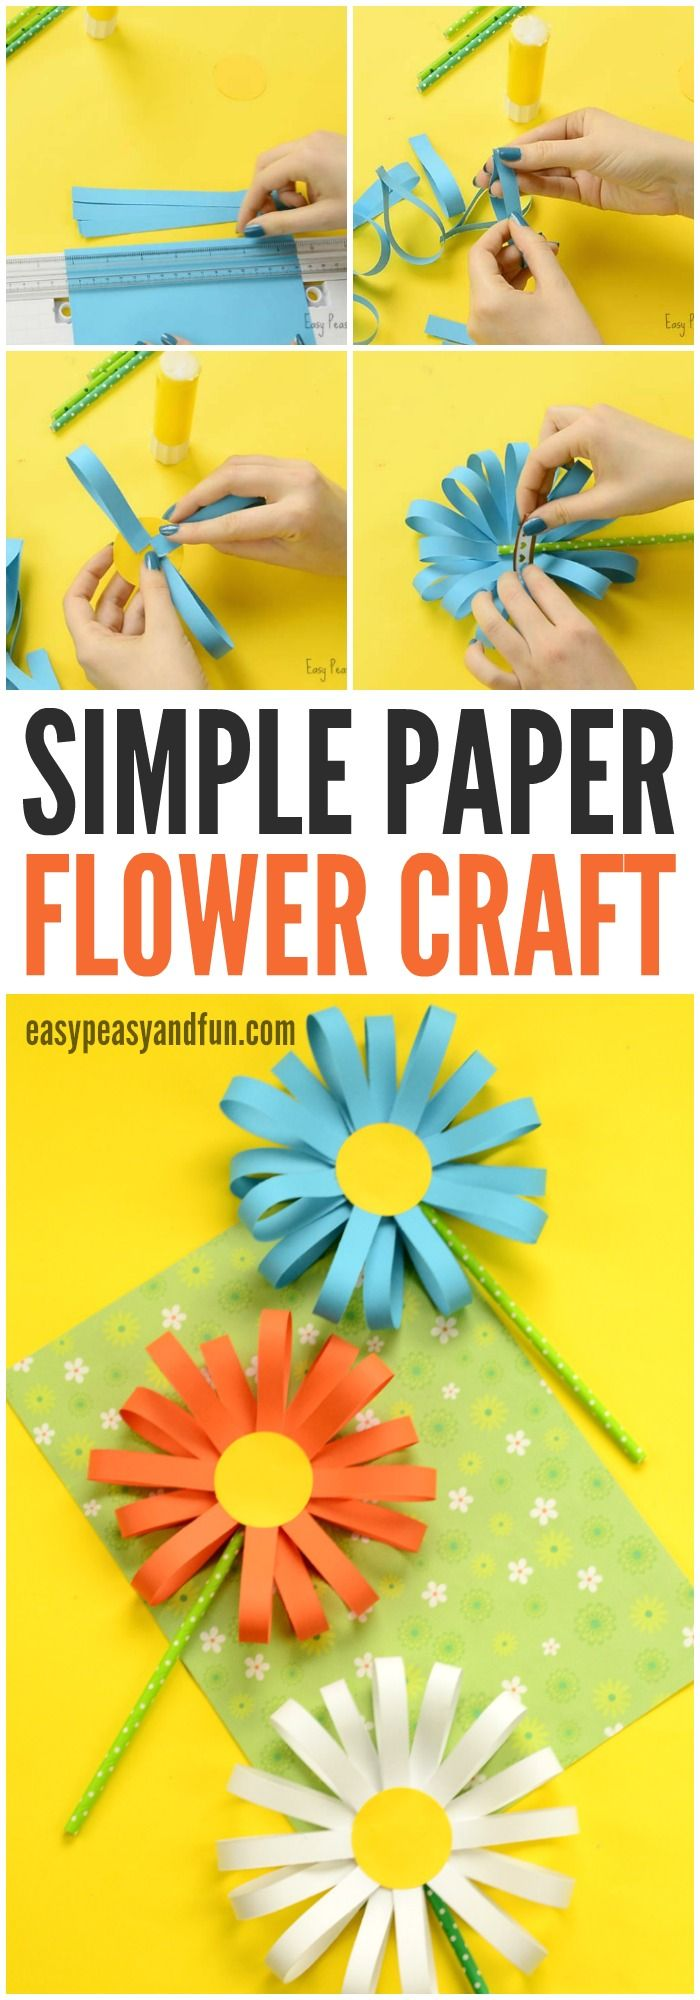 Preschool rain stick craft - Paper Flower Craft